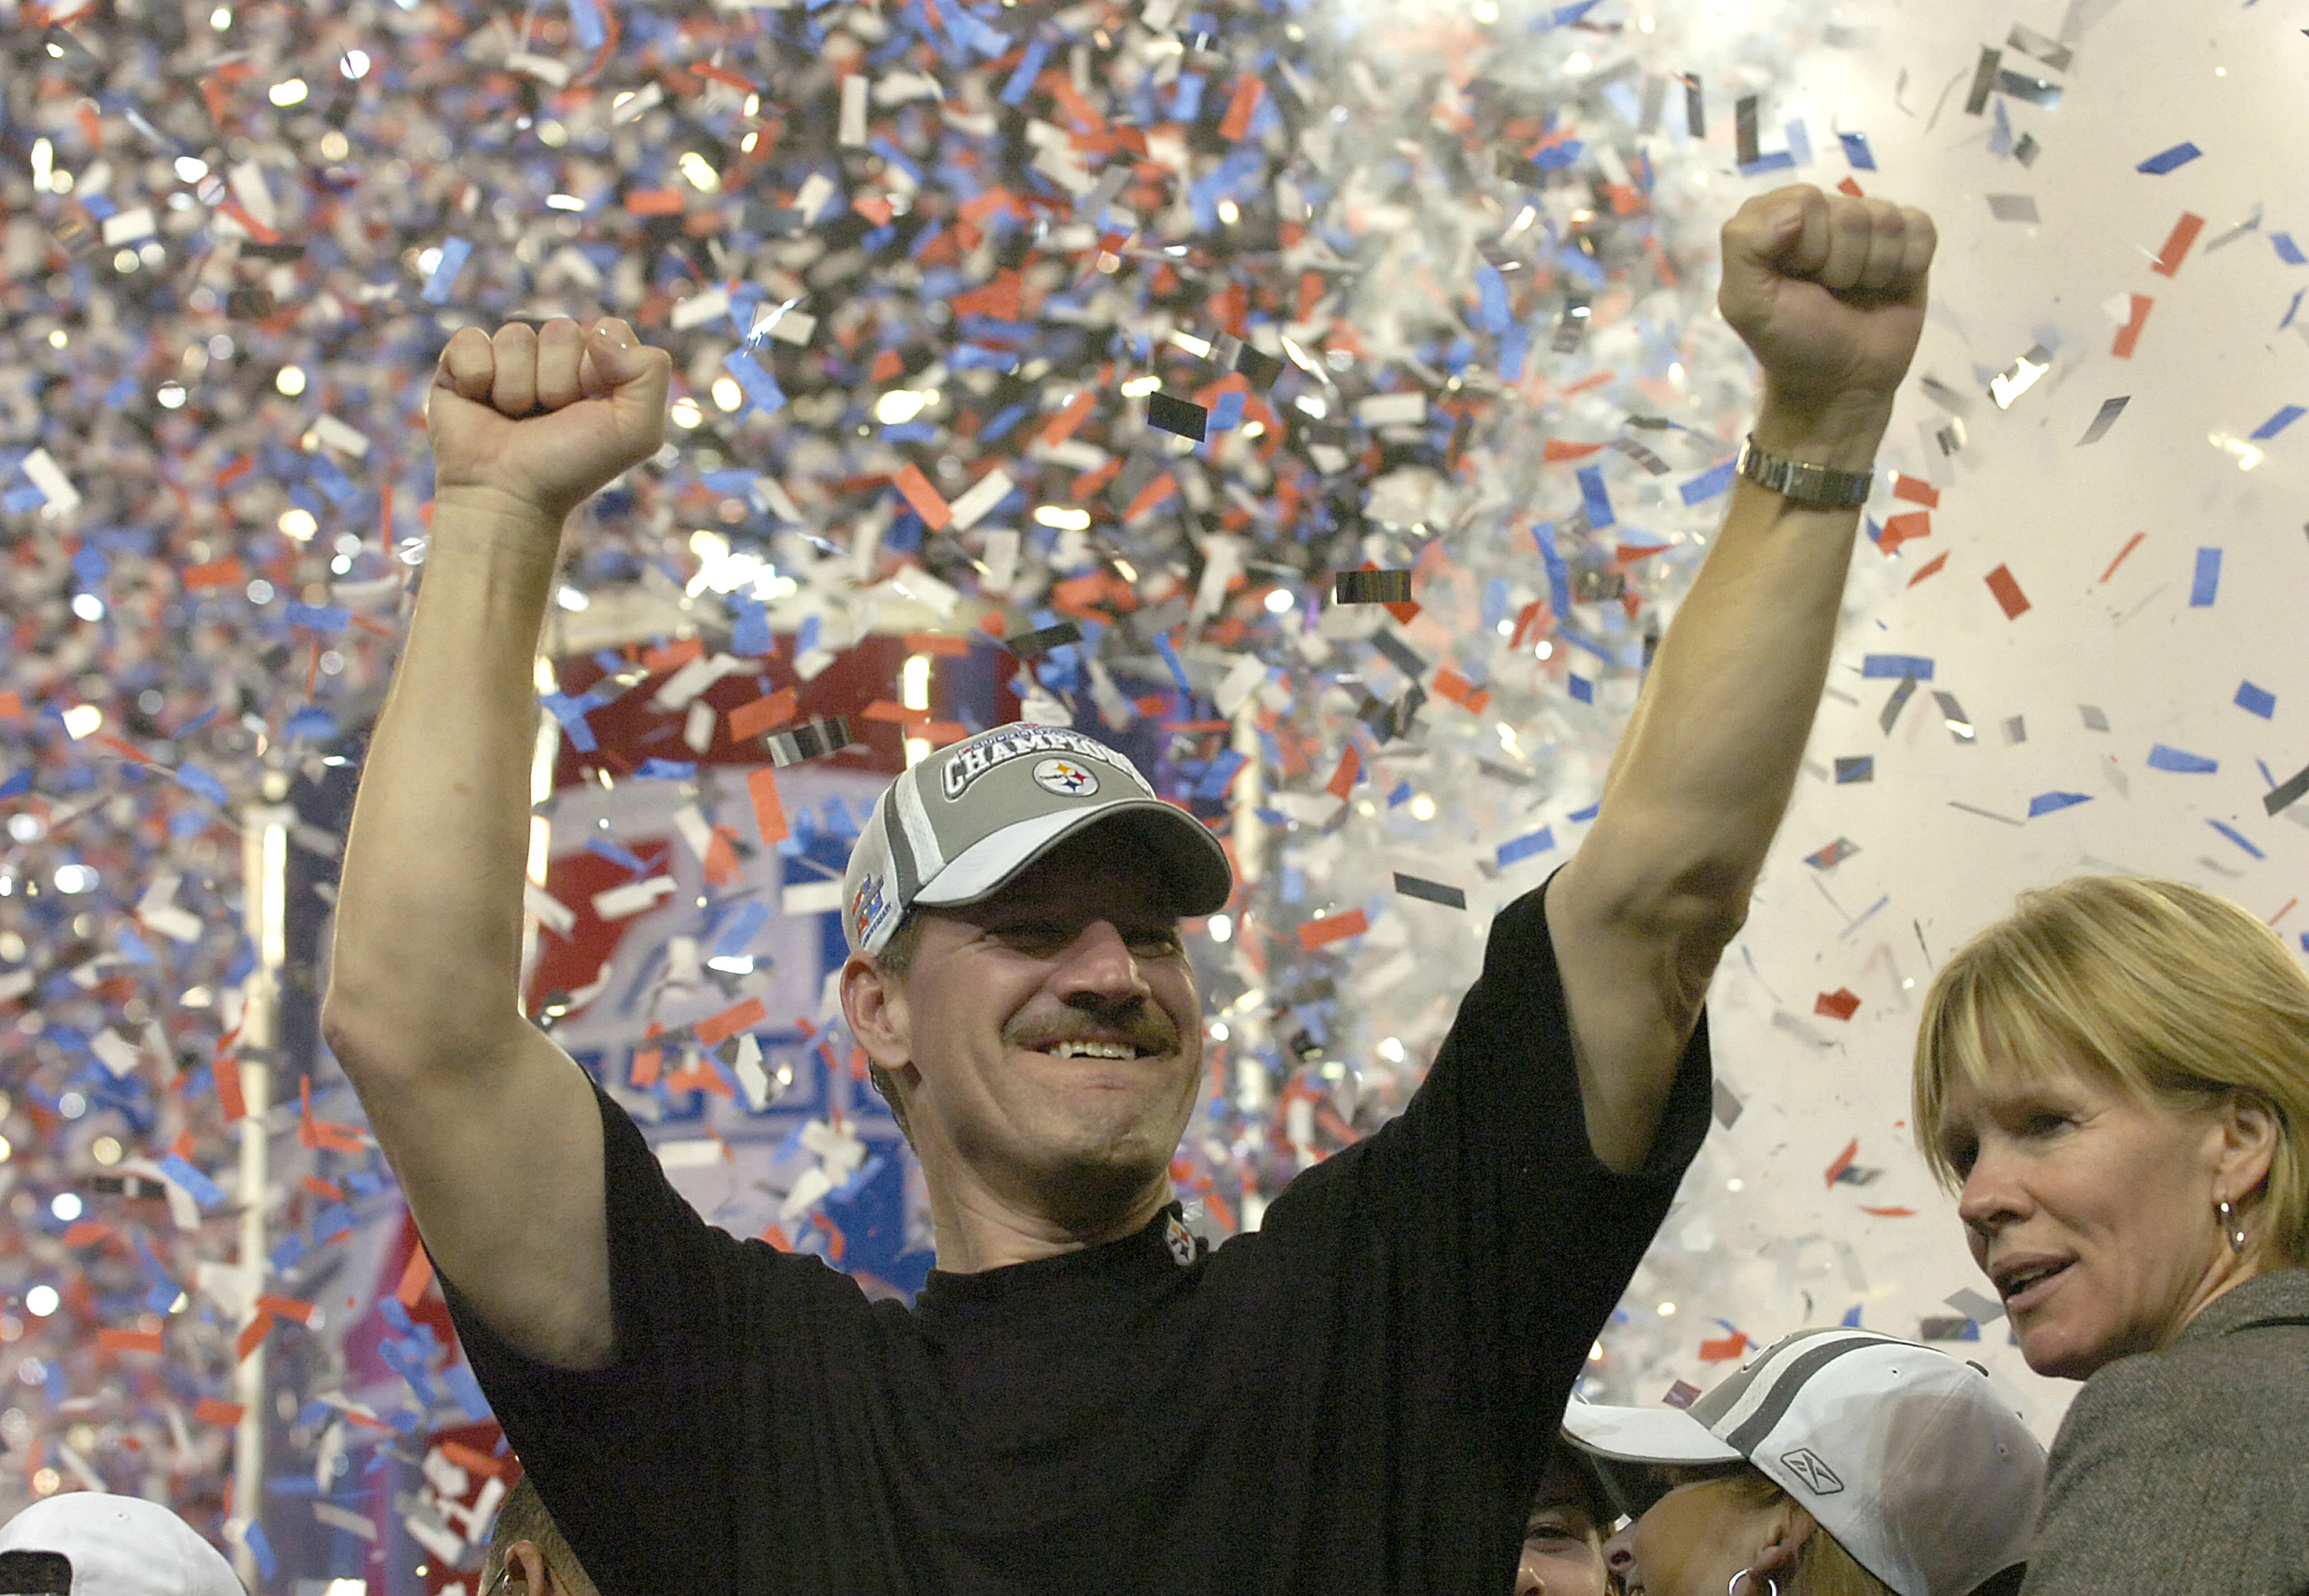 Steelers head coach Bill Cowher celebrates after the Steelers won Super Bowl XL between the Pittsburgh Steelers and Seattle Seahawks at Ford Field in Detroit, Michigan on February 5, 2006.  (Photo by Al Messerschmidt/Getty Images)